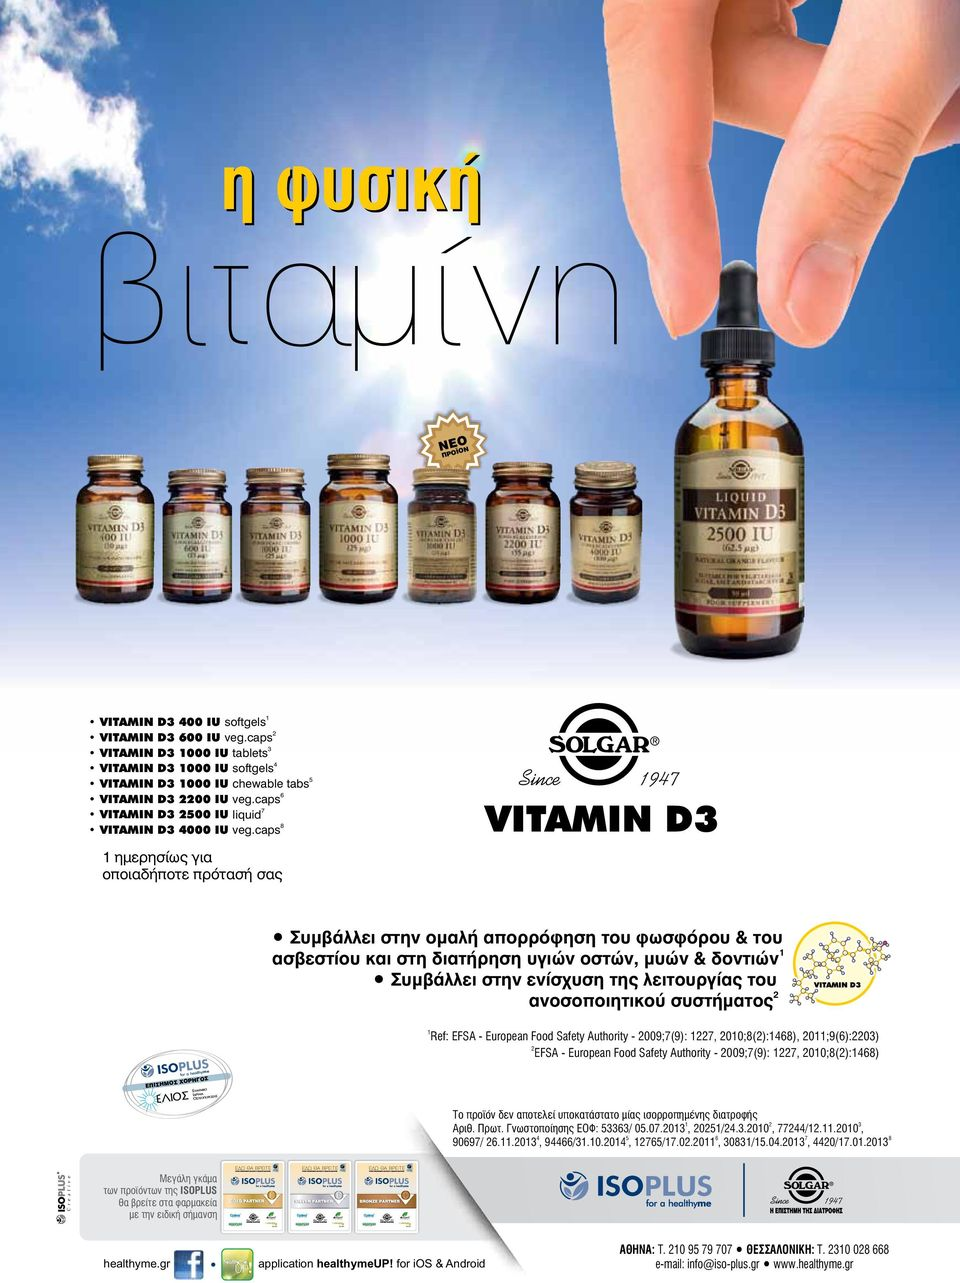 caps 3 VITAMIN D3 1000 IU tablets 4 VITAMIN D3 1000 IU softgels VITAMIN D3 1000 IU chewable tabs 6 VITAMIN D3 2200 IU veg.caps 7 VITAMIN D3 2500 IU liquid 8 VITAMIN D3 4000 IU veg.